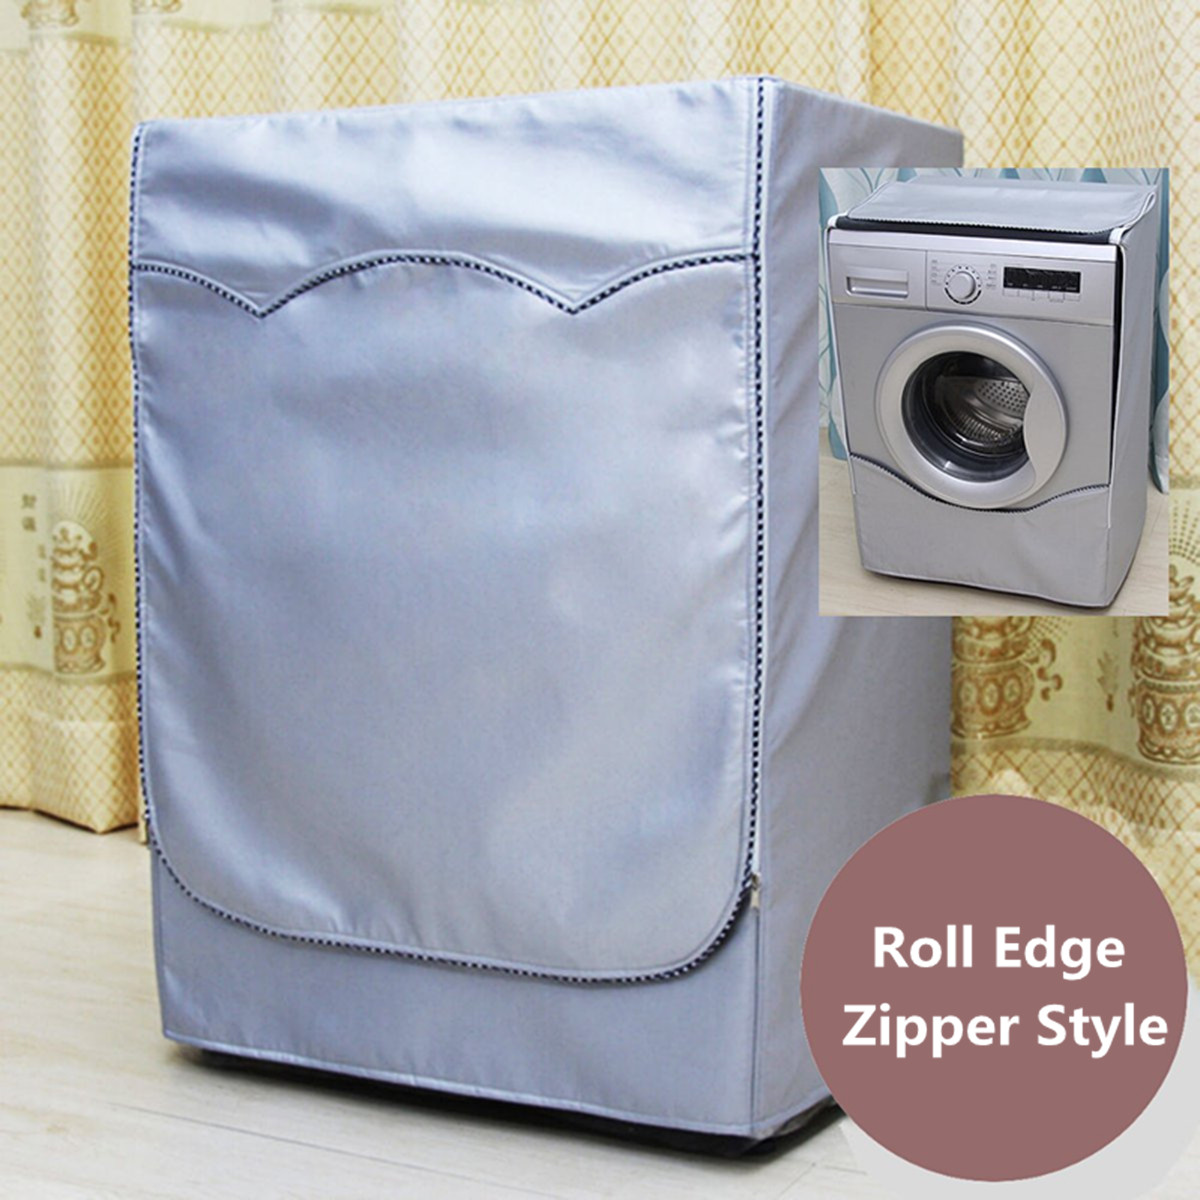 Fully Automatic Roller Washer Sunscreen Washing Machine Waterproof Cover Dryer Polyester Dustproof Washing Machine CoverFully Automatic Roller Washer Sunscreen Washing Machine Waterproof Cover Dryer Polyester Dustproof Washing Machine Cover